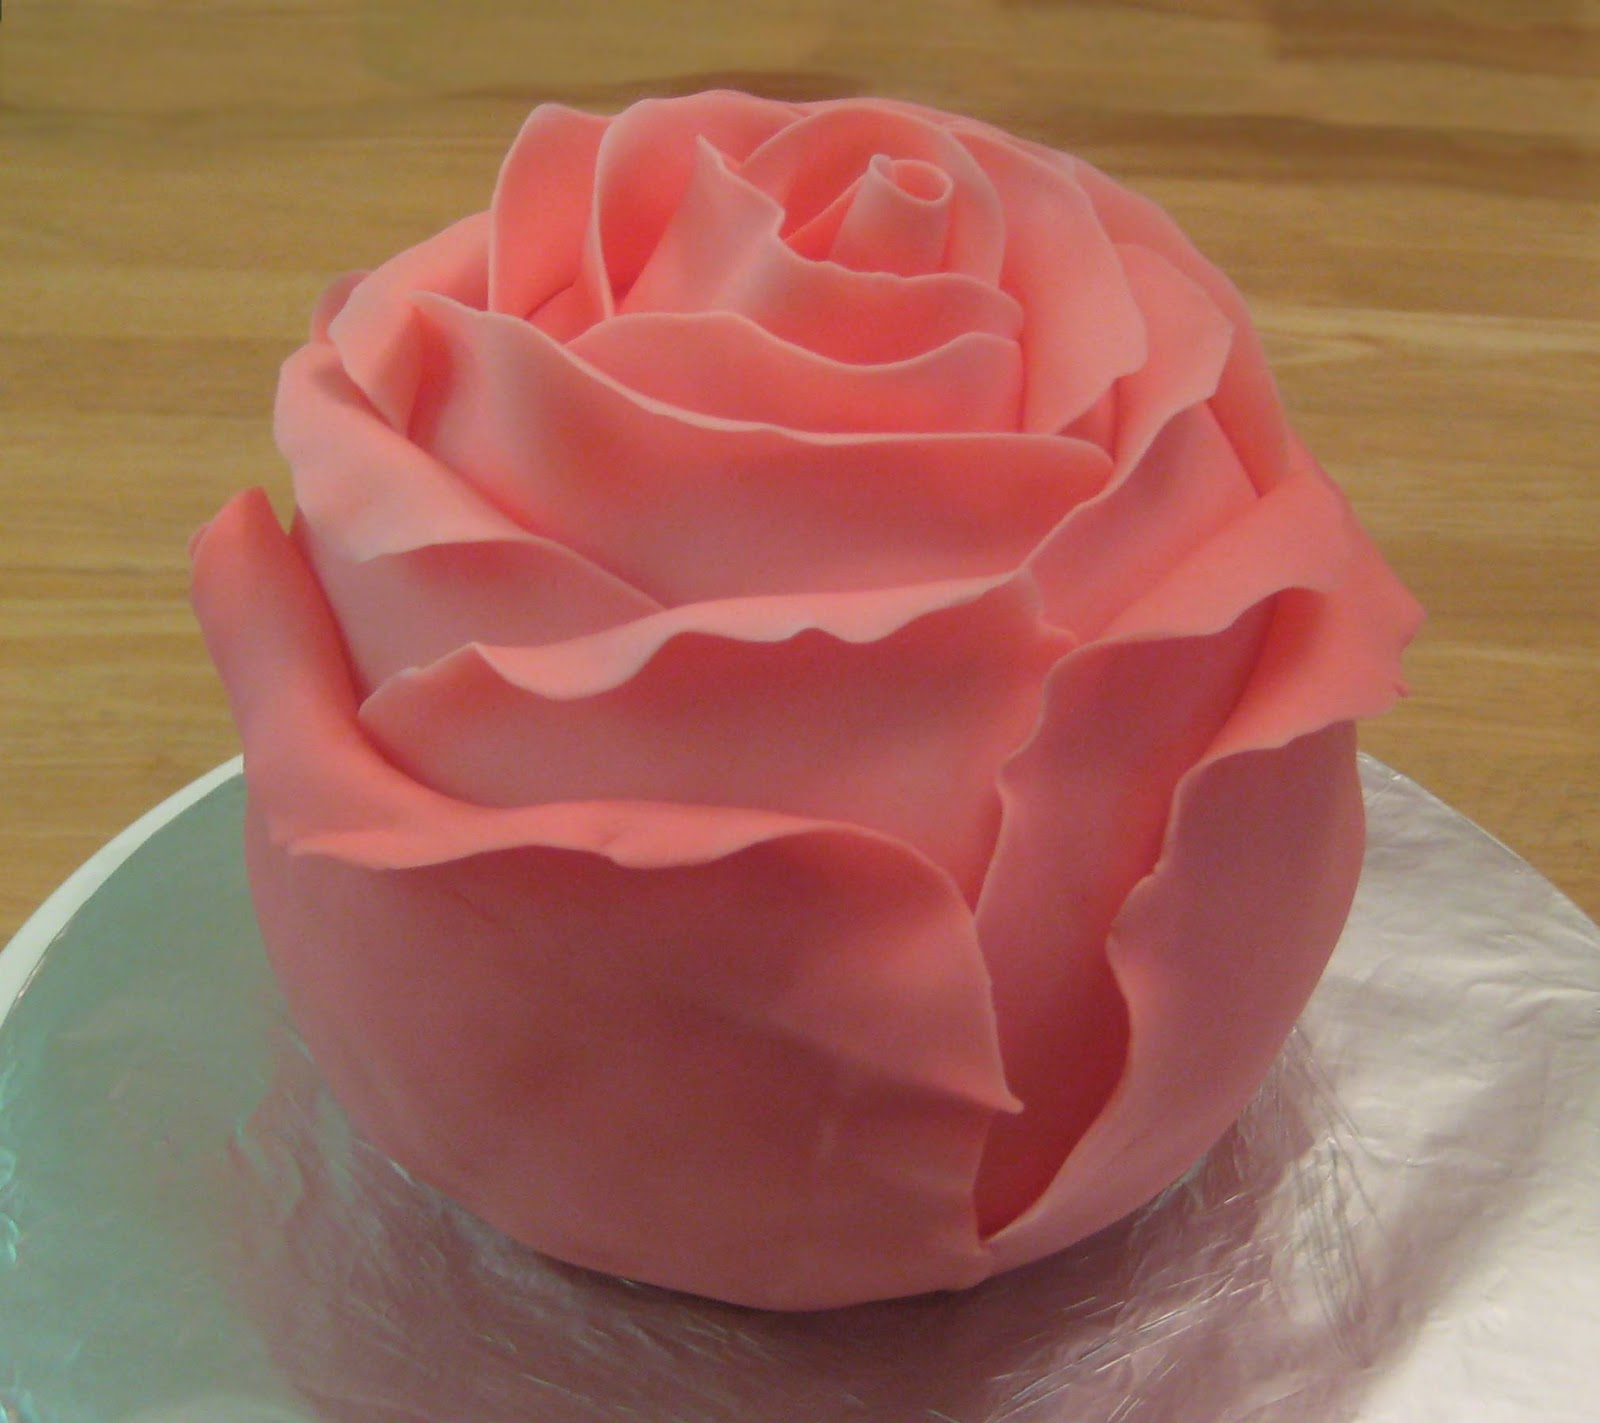 Images Of Cake With Roses : My Cake Corner: A Rose Cake by any Other Name Would Still ...